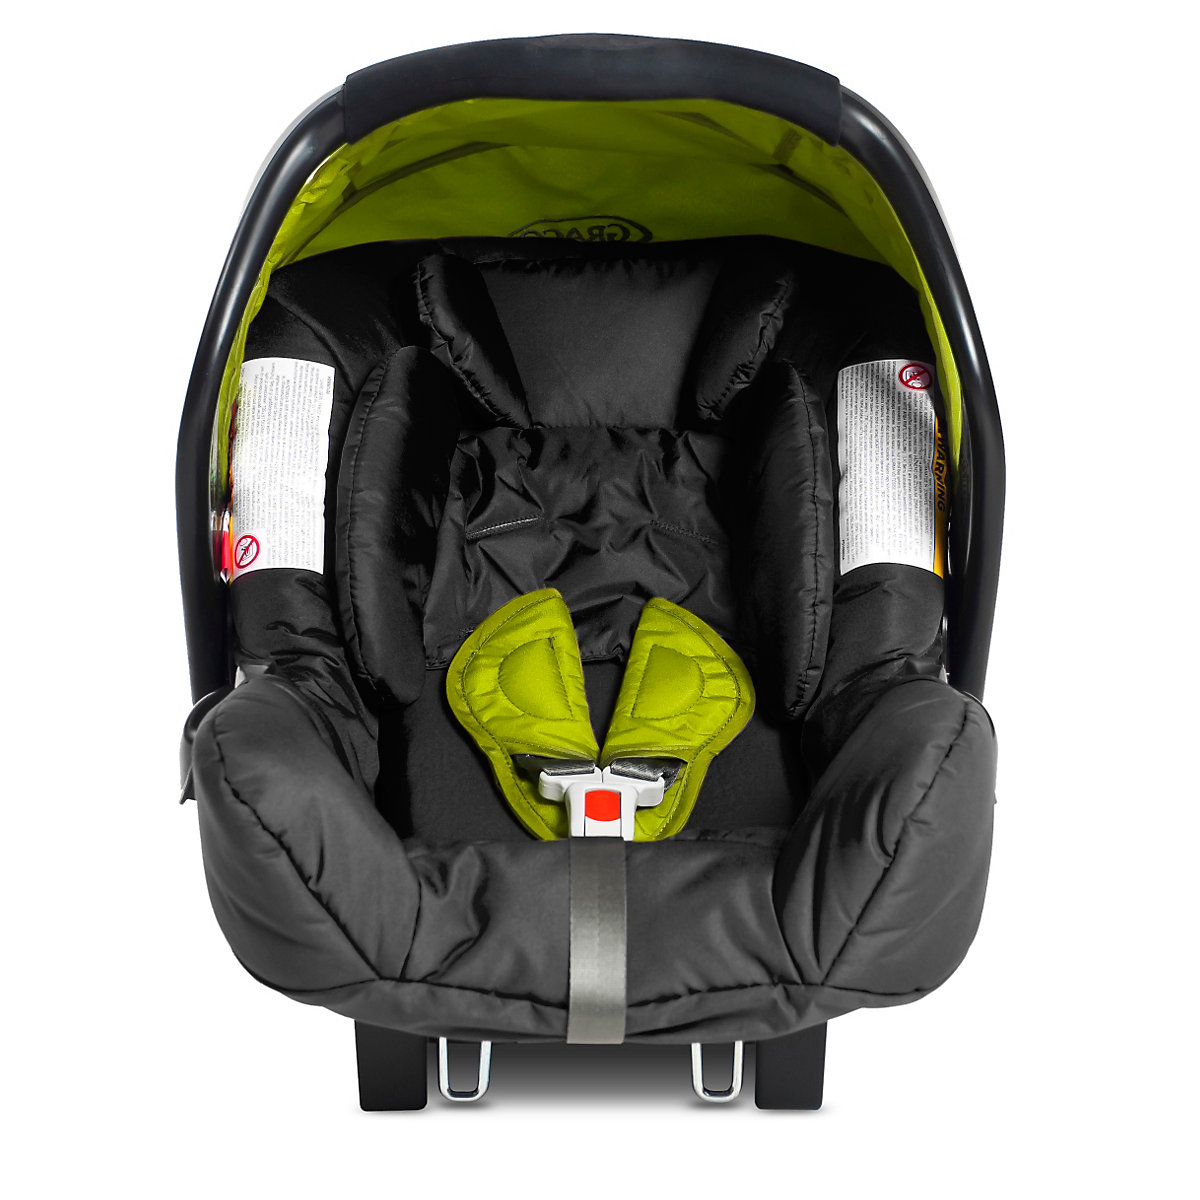 'Graco Evo Junior Baby Car Seat - Lime